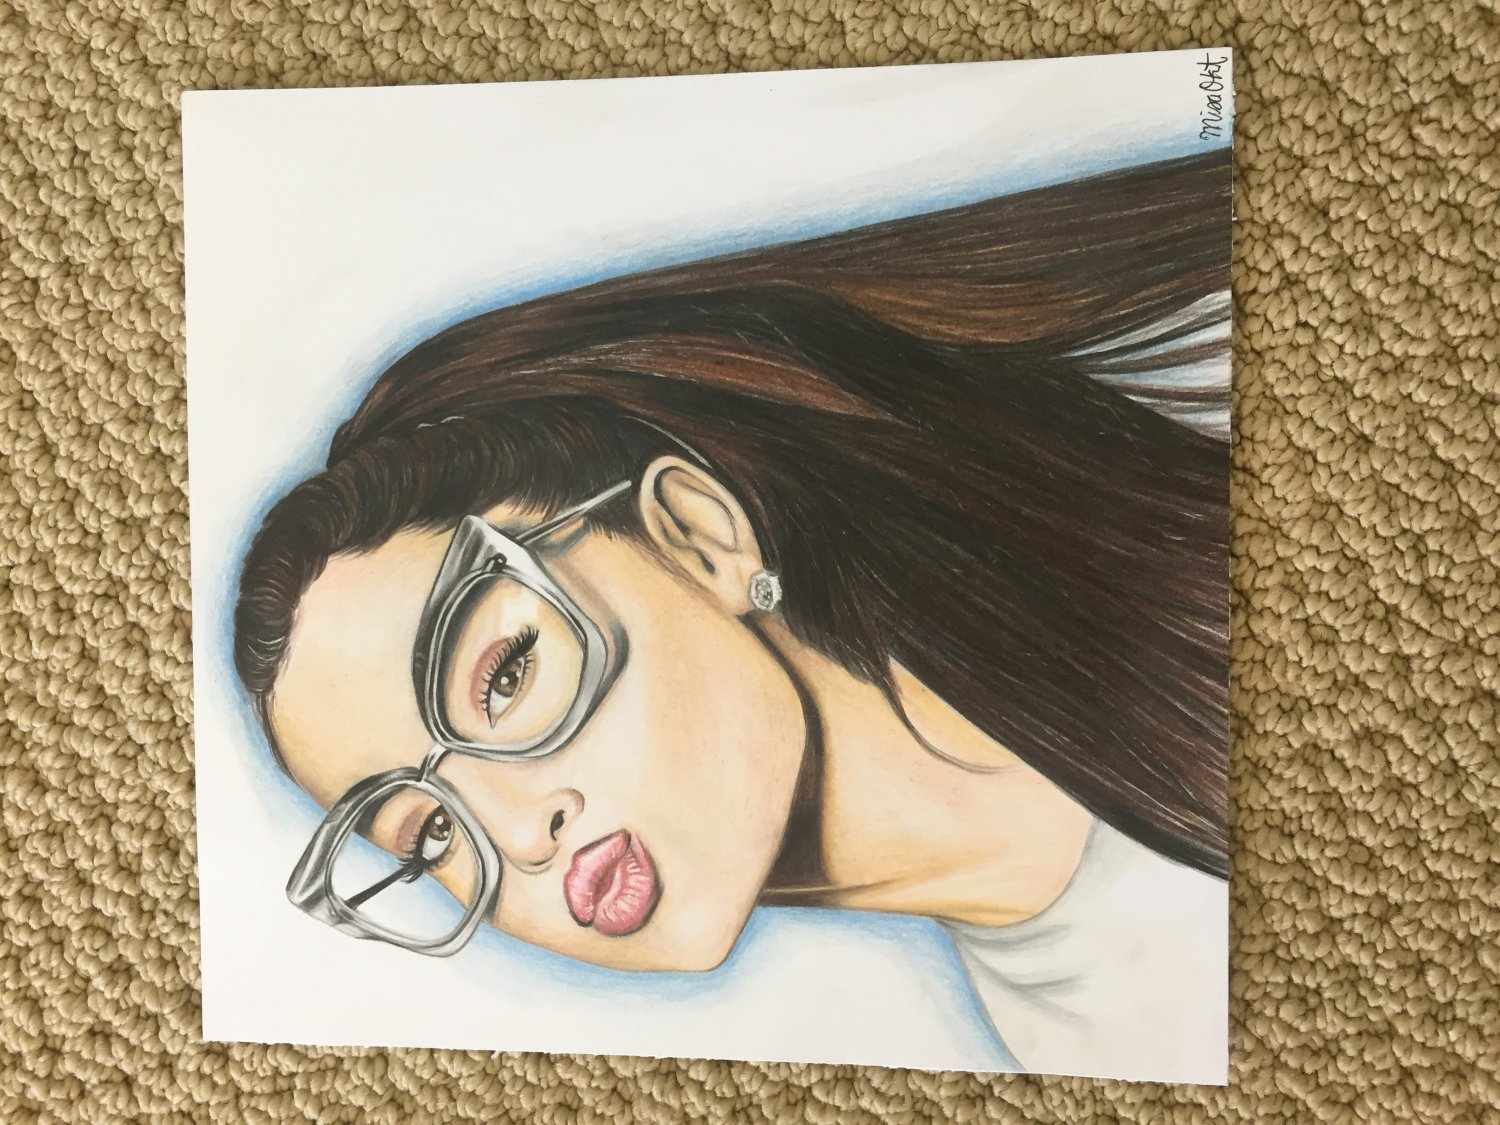 Ariana Grande Colored Pencil Drawing